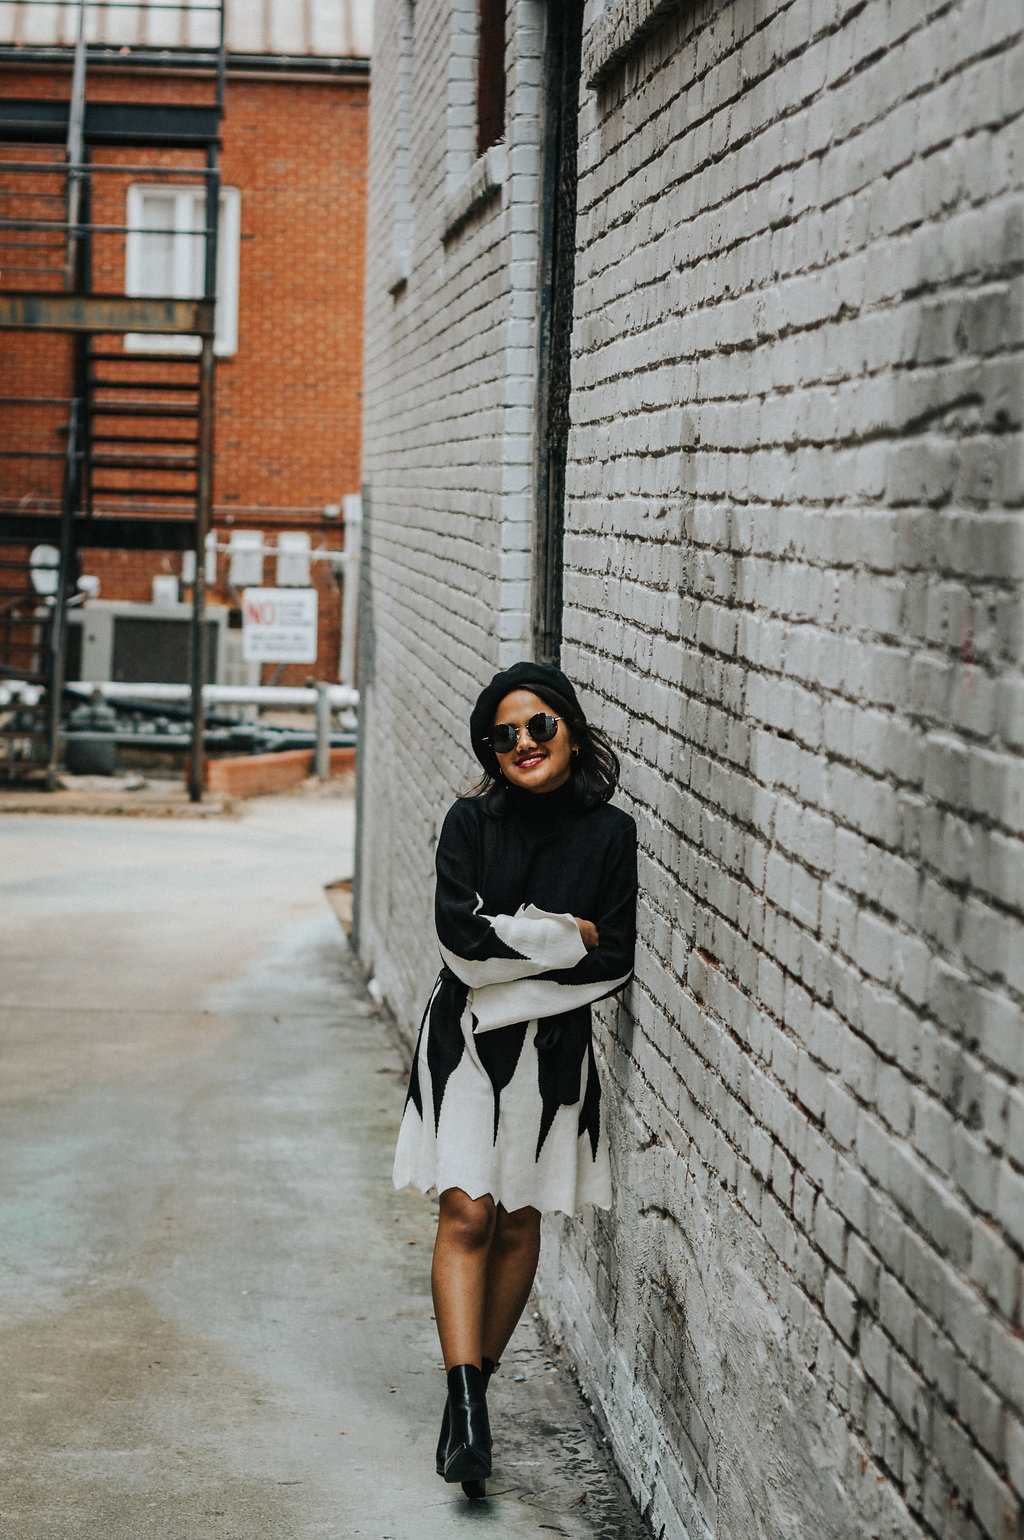 & Other Stories Merino Wool Turtleneck Knit Top With Kendall & Kylie Finley Boots, Spitfire Infinity Sunnies, and Zara Briefcase Crossbody with Scarf